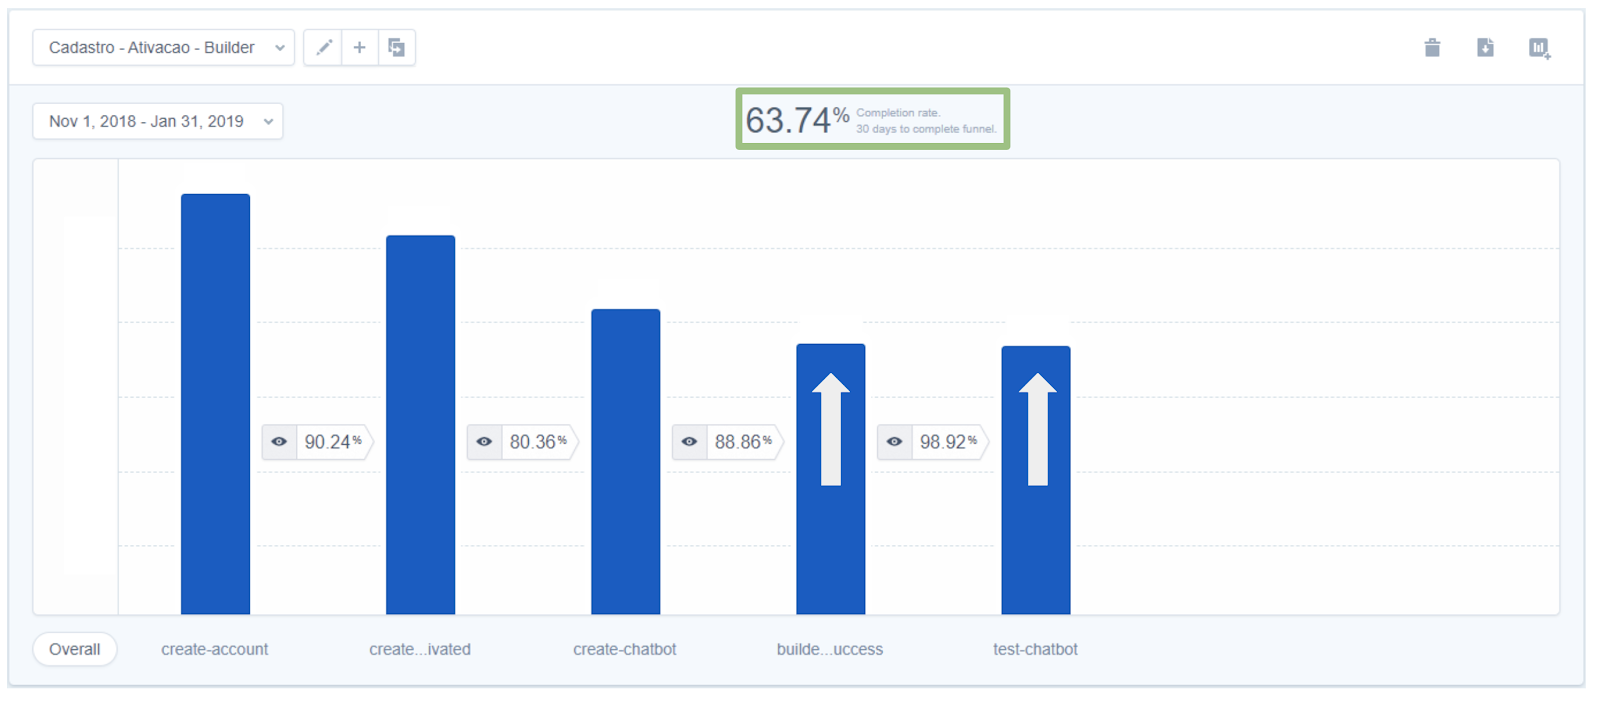 this is a bar chart showing an activation funnel with a good completion rate/ activation rate. this image shows an activation rate for new users of 63.74%